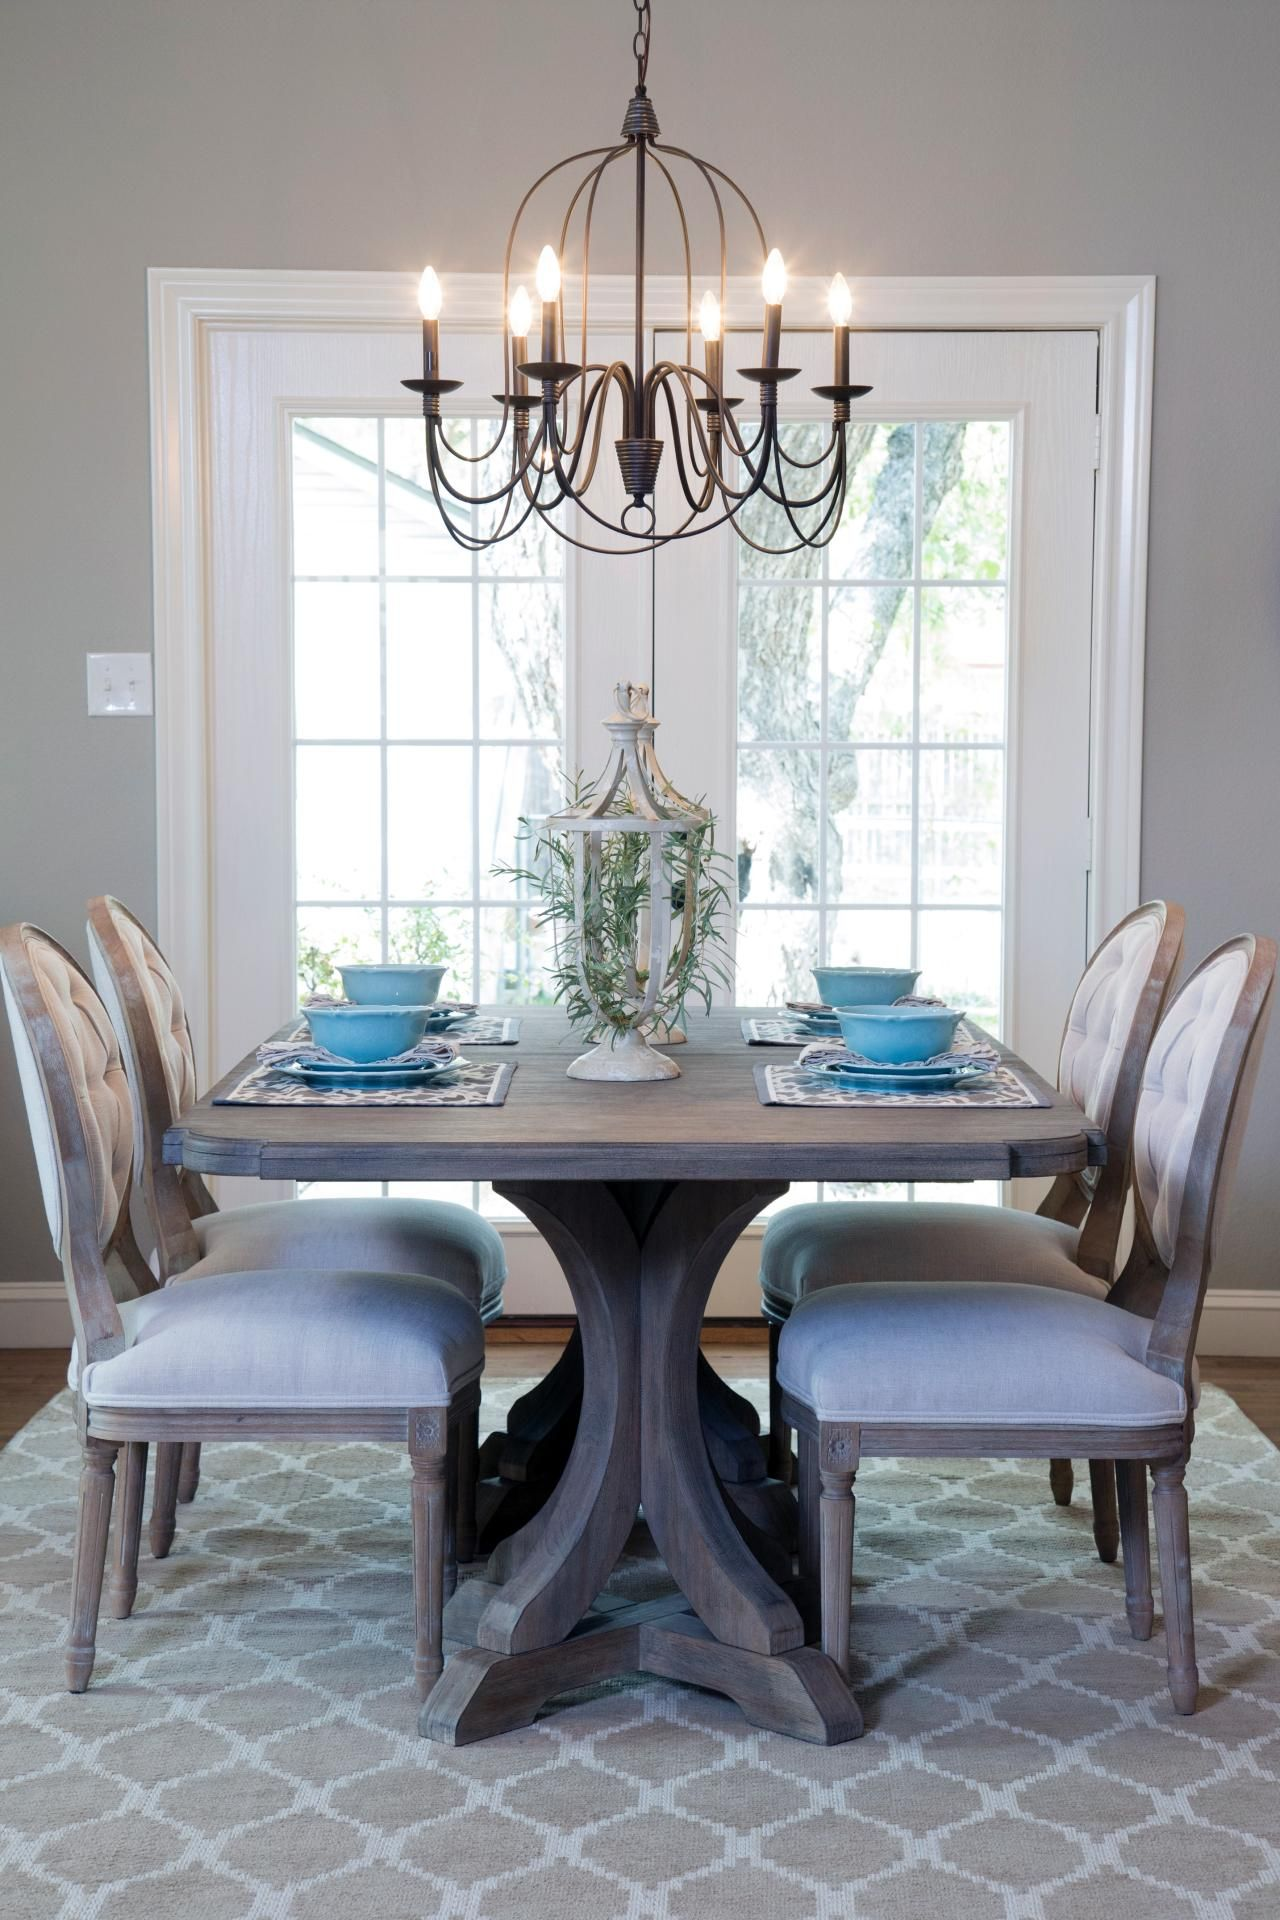 Fixer upper kitchen table decor - A 1940s Vintage Fixer Upper For First Time Homebuyers Hgtv S Fixer Upper With Chip Lighting For Dining Tabledining